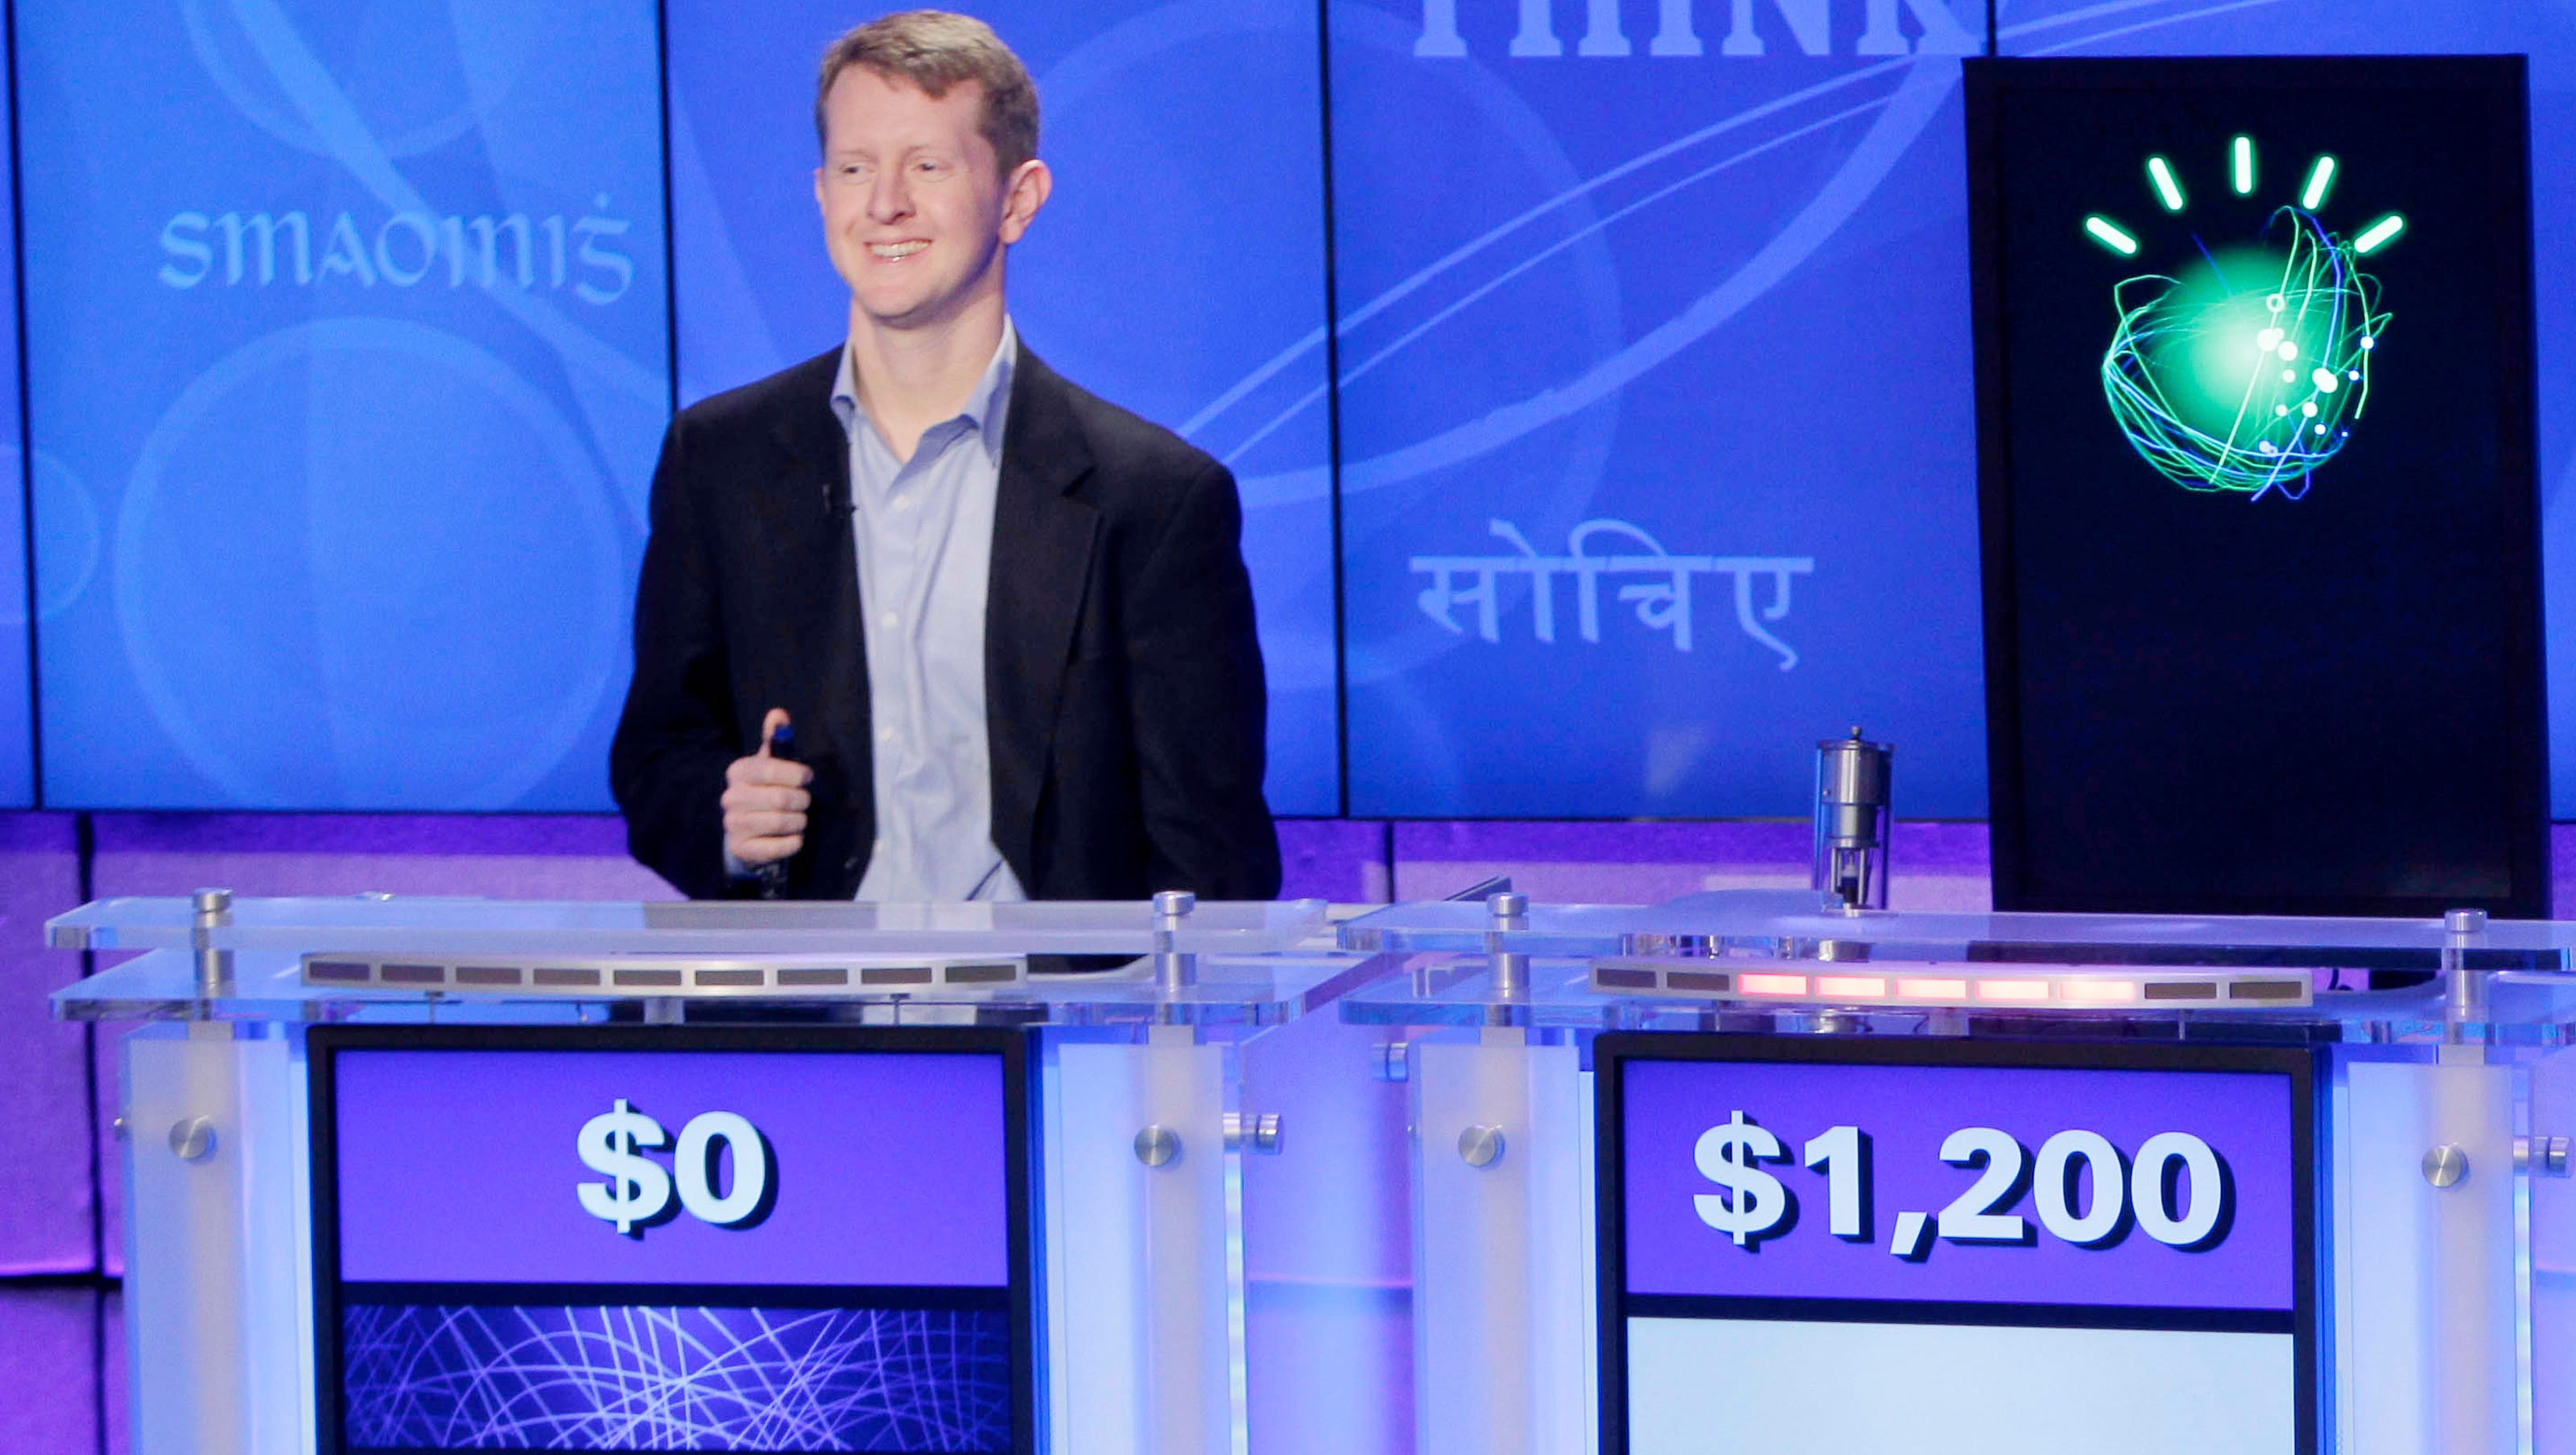 'Jeopardy!': Most loved, hated and memorable contestants through the years - USA TODAY